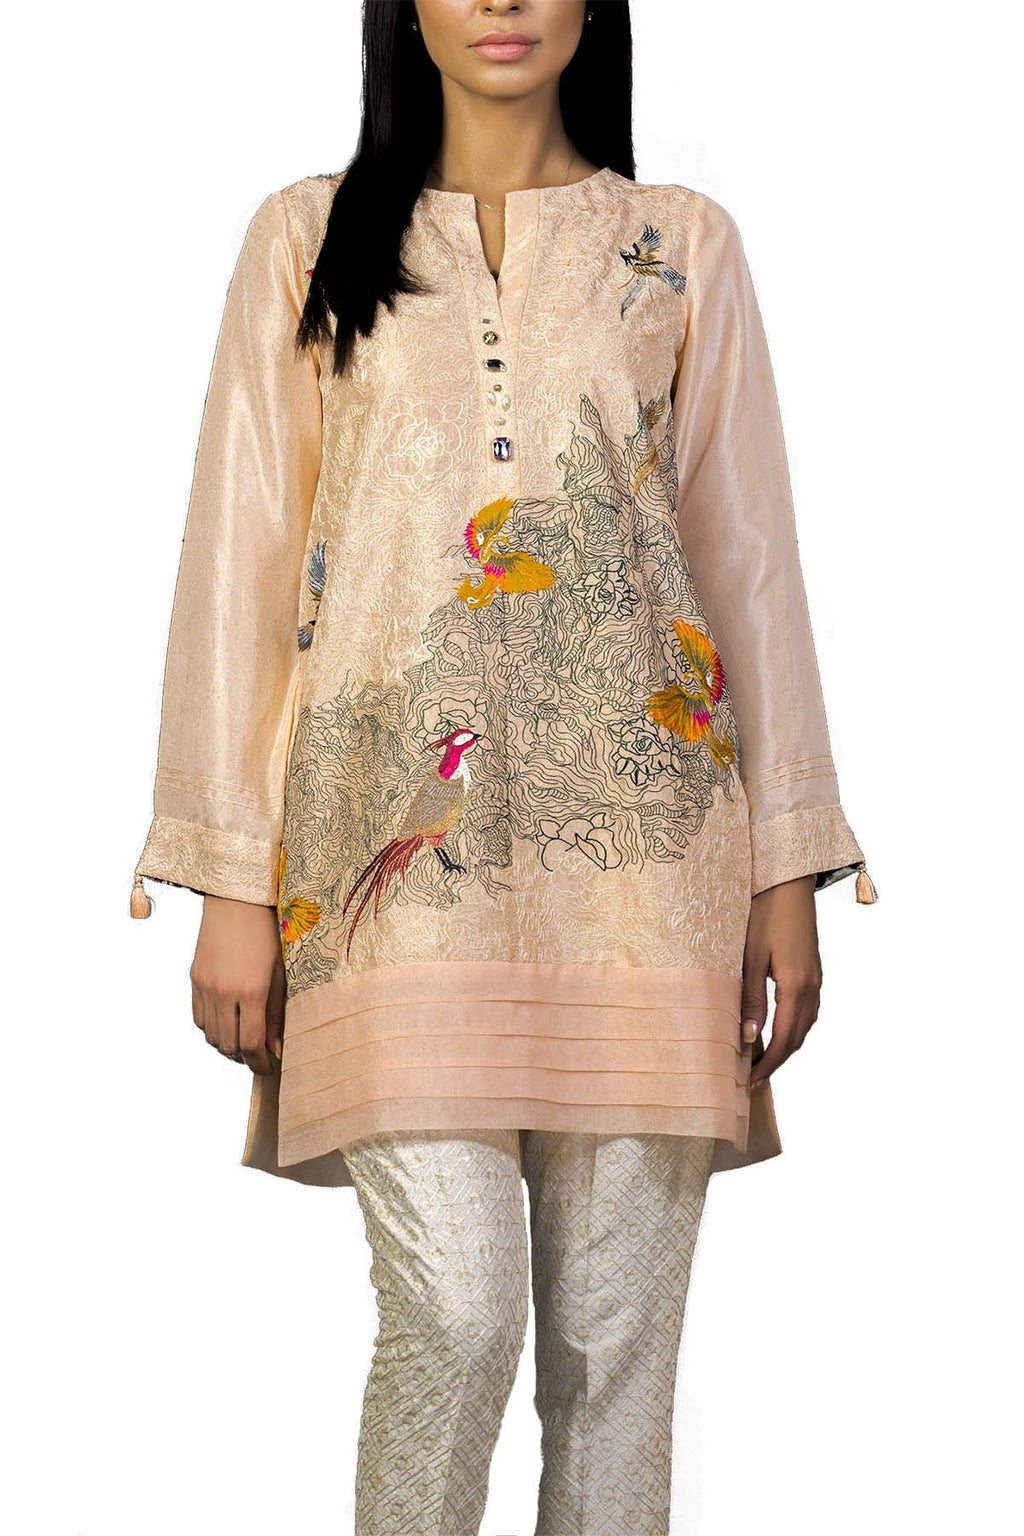 Sania Maskatiya - Pink Raw Silk Embroidered Shirt